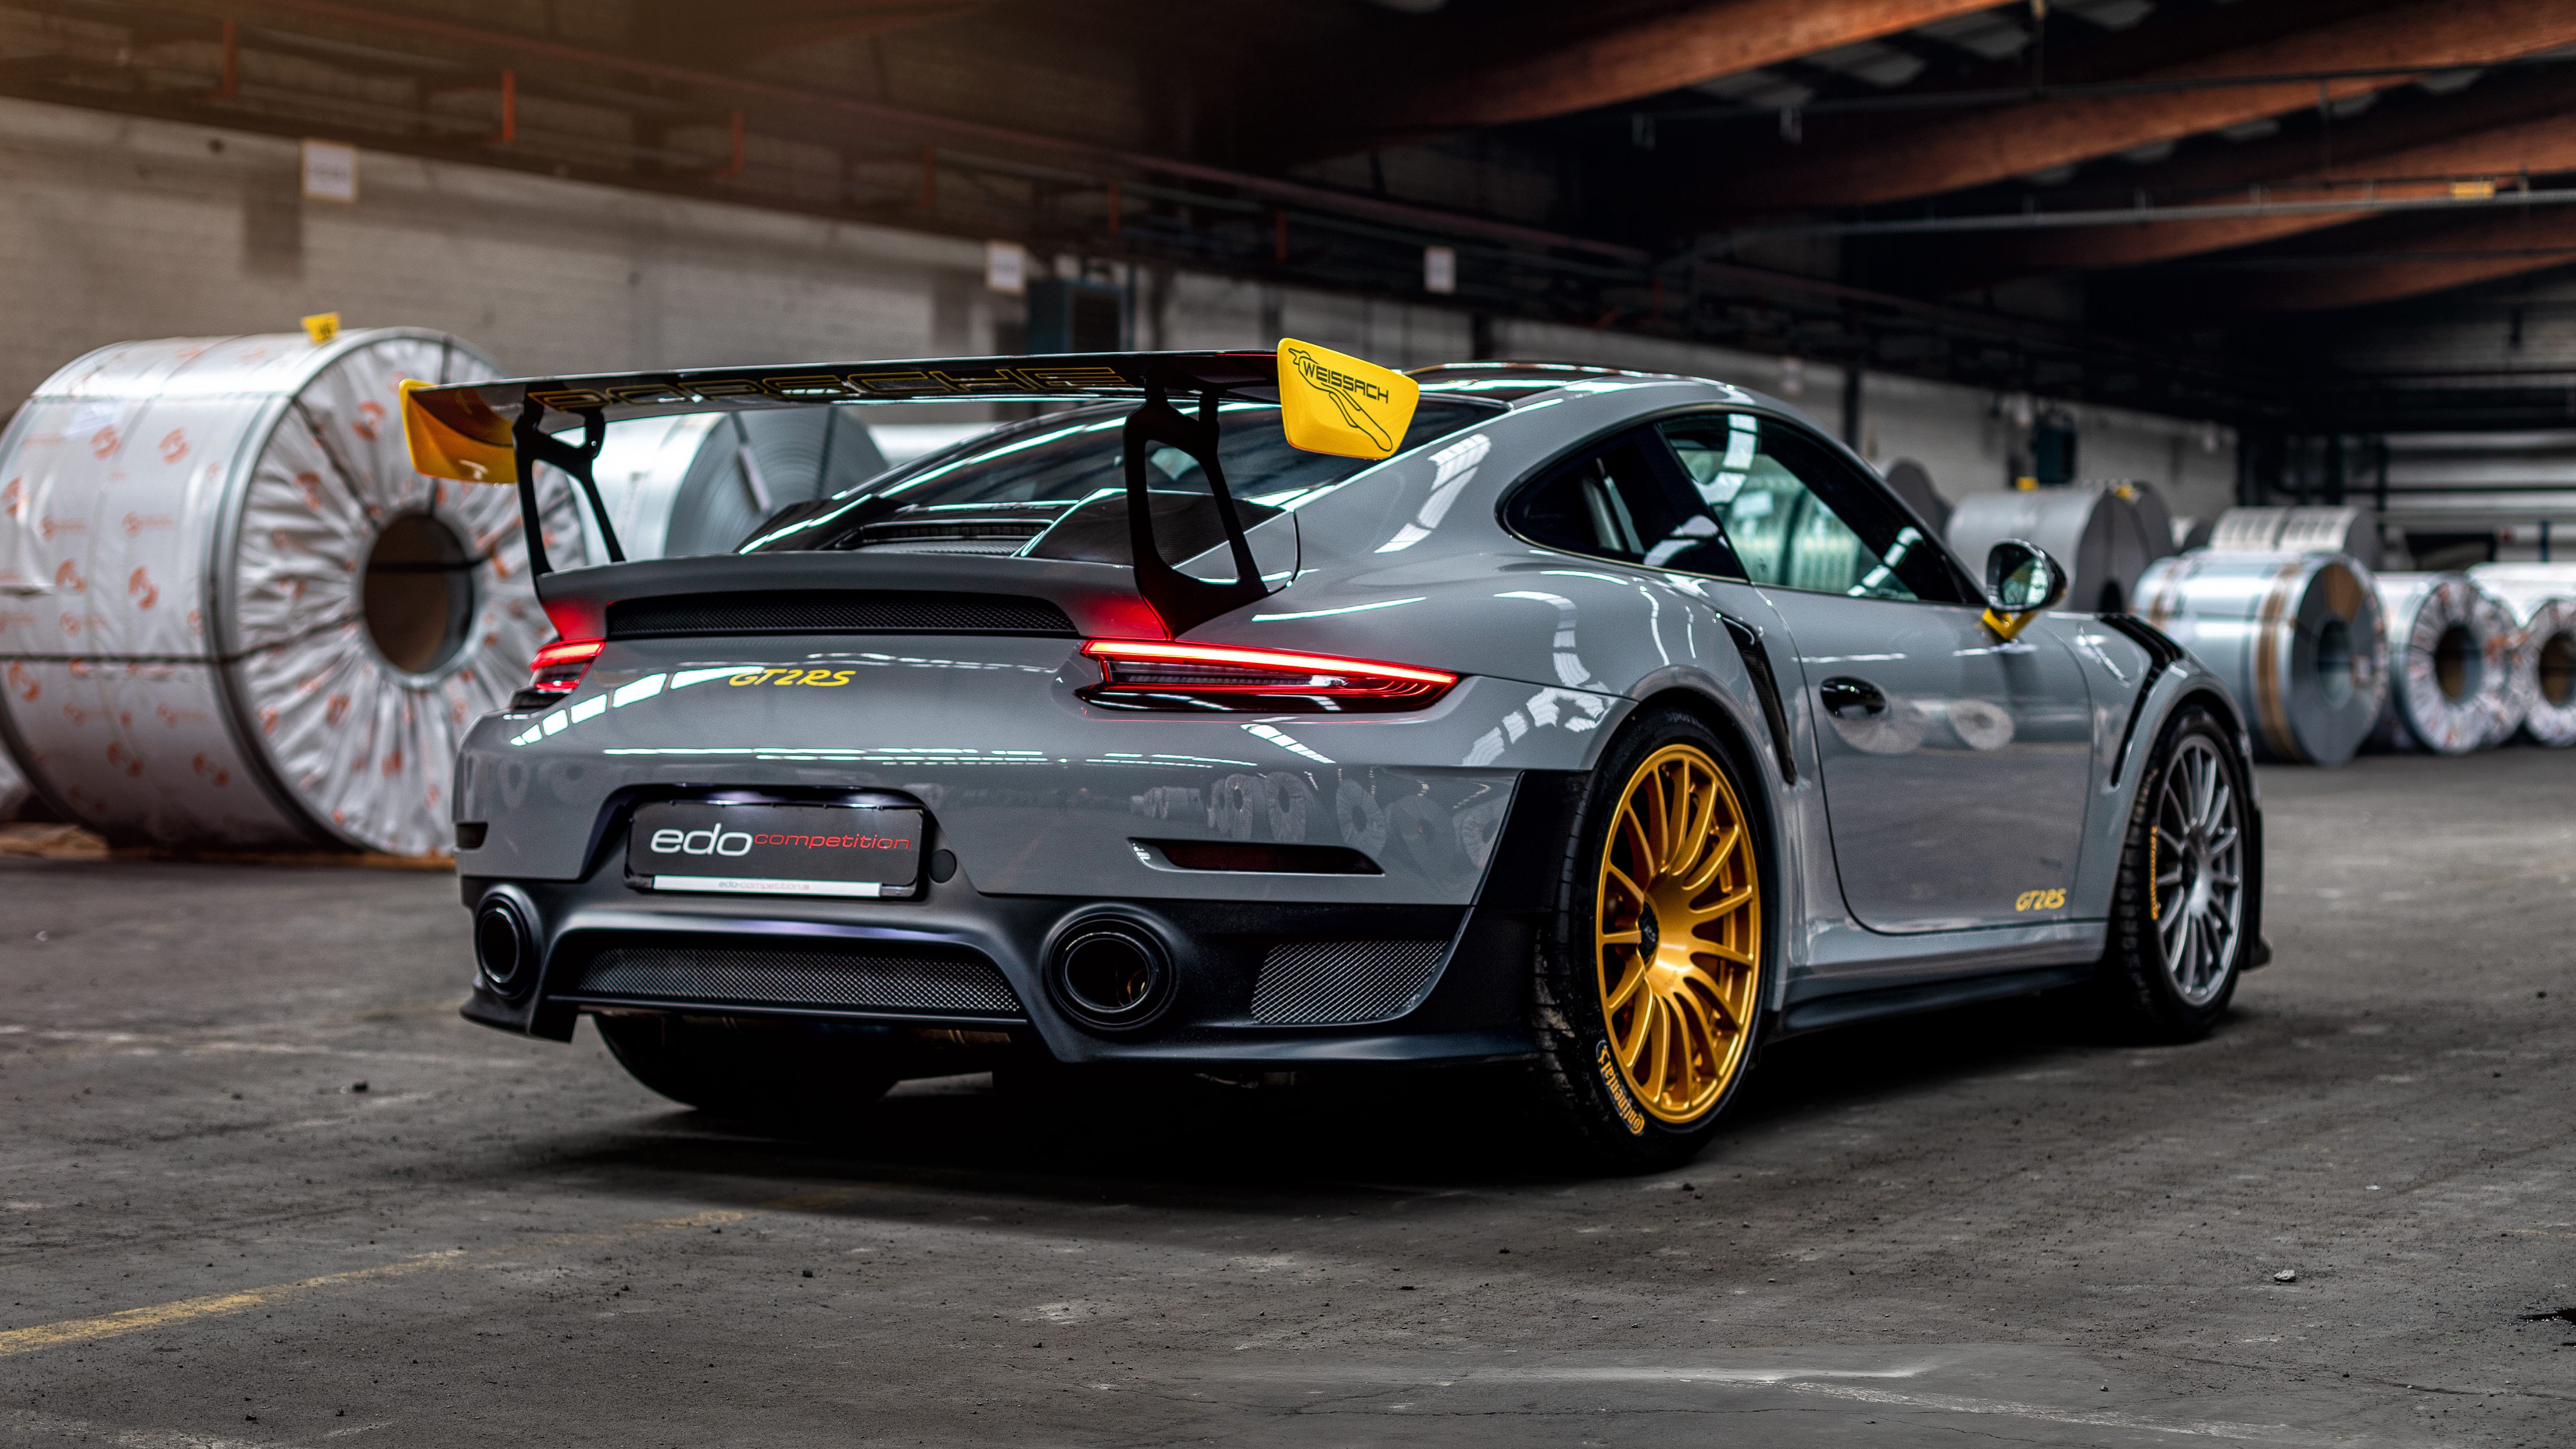 Edo Competition Porsche 911 Gt2 Rs 2020 5k 2 Wallpaper Hd Car Wallpapers Id 14593